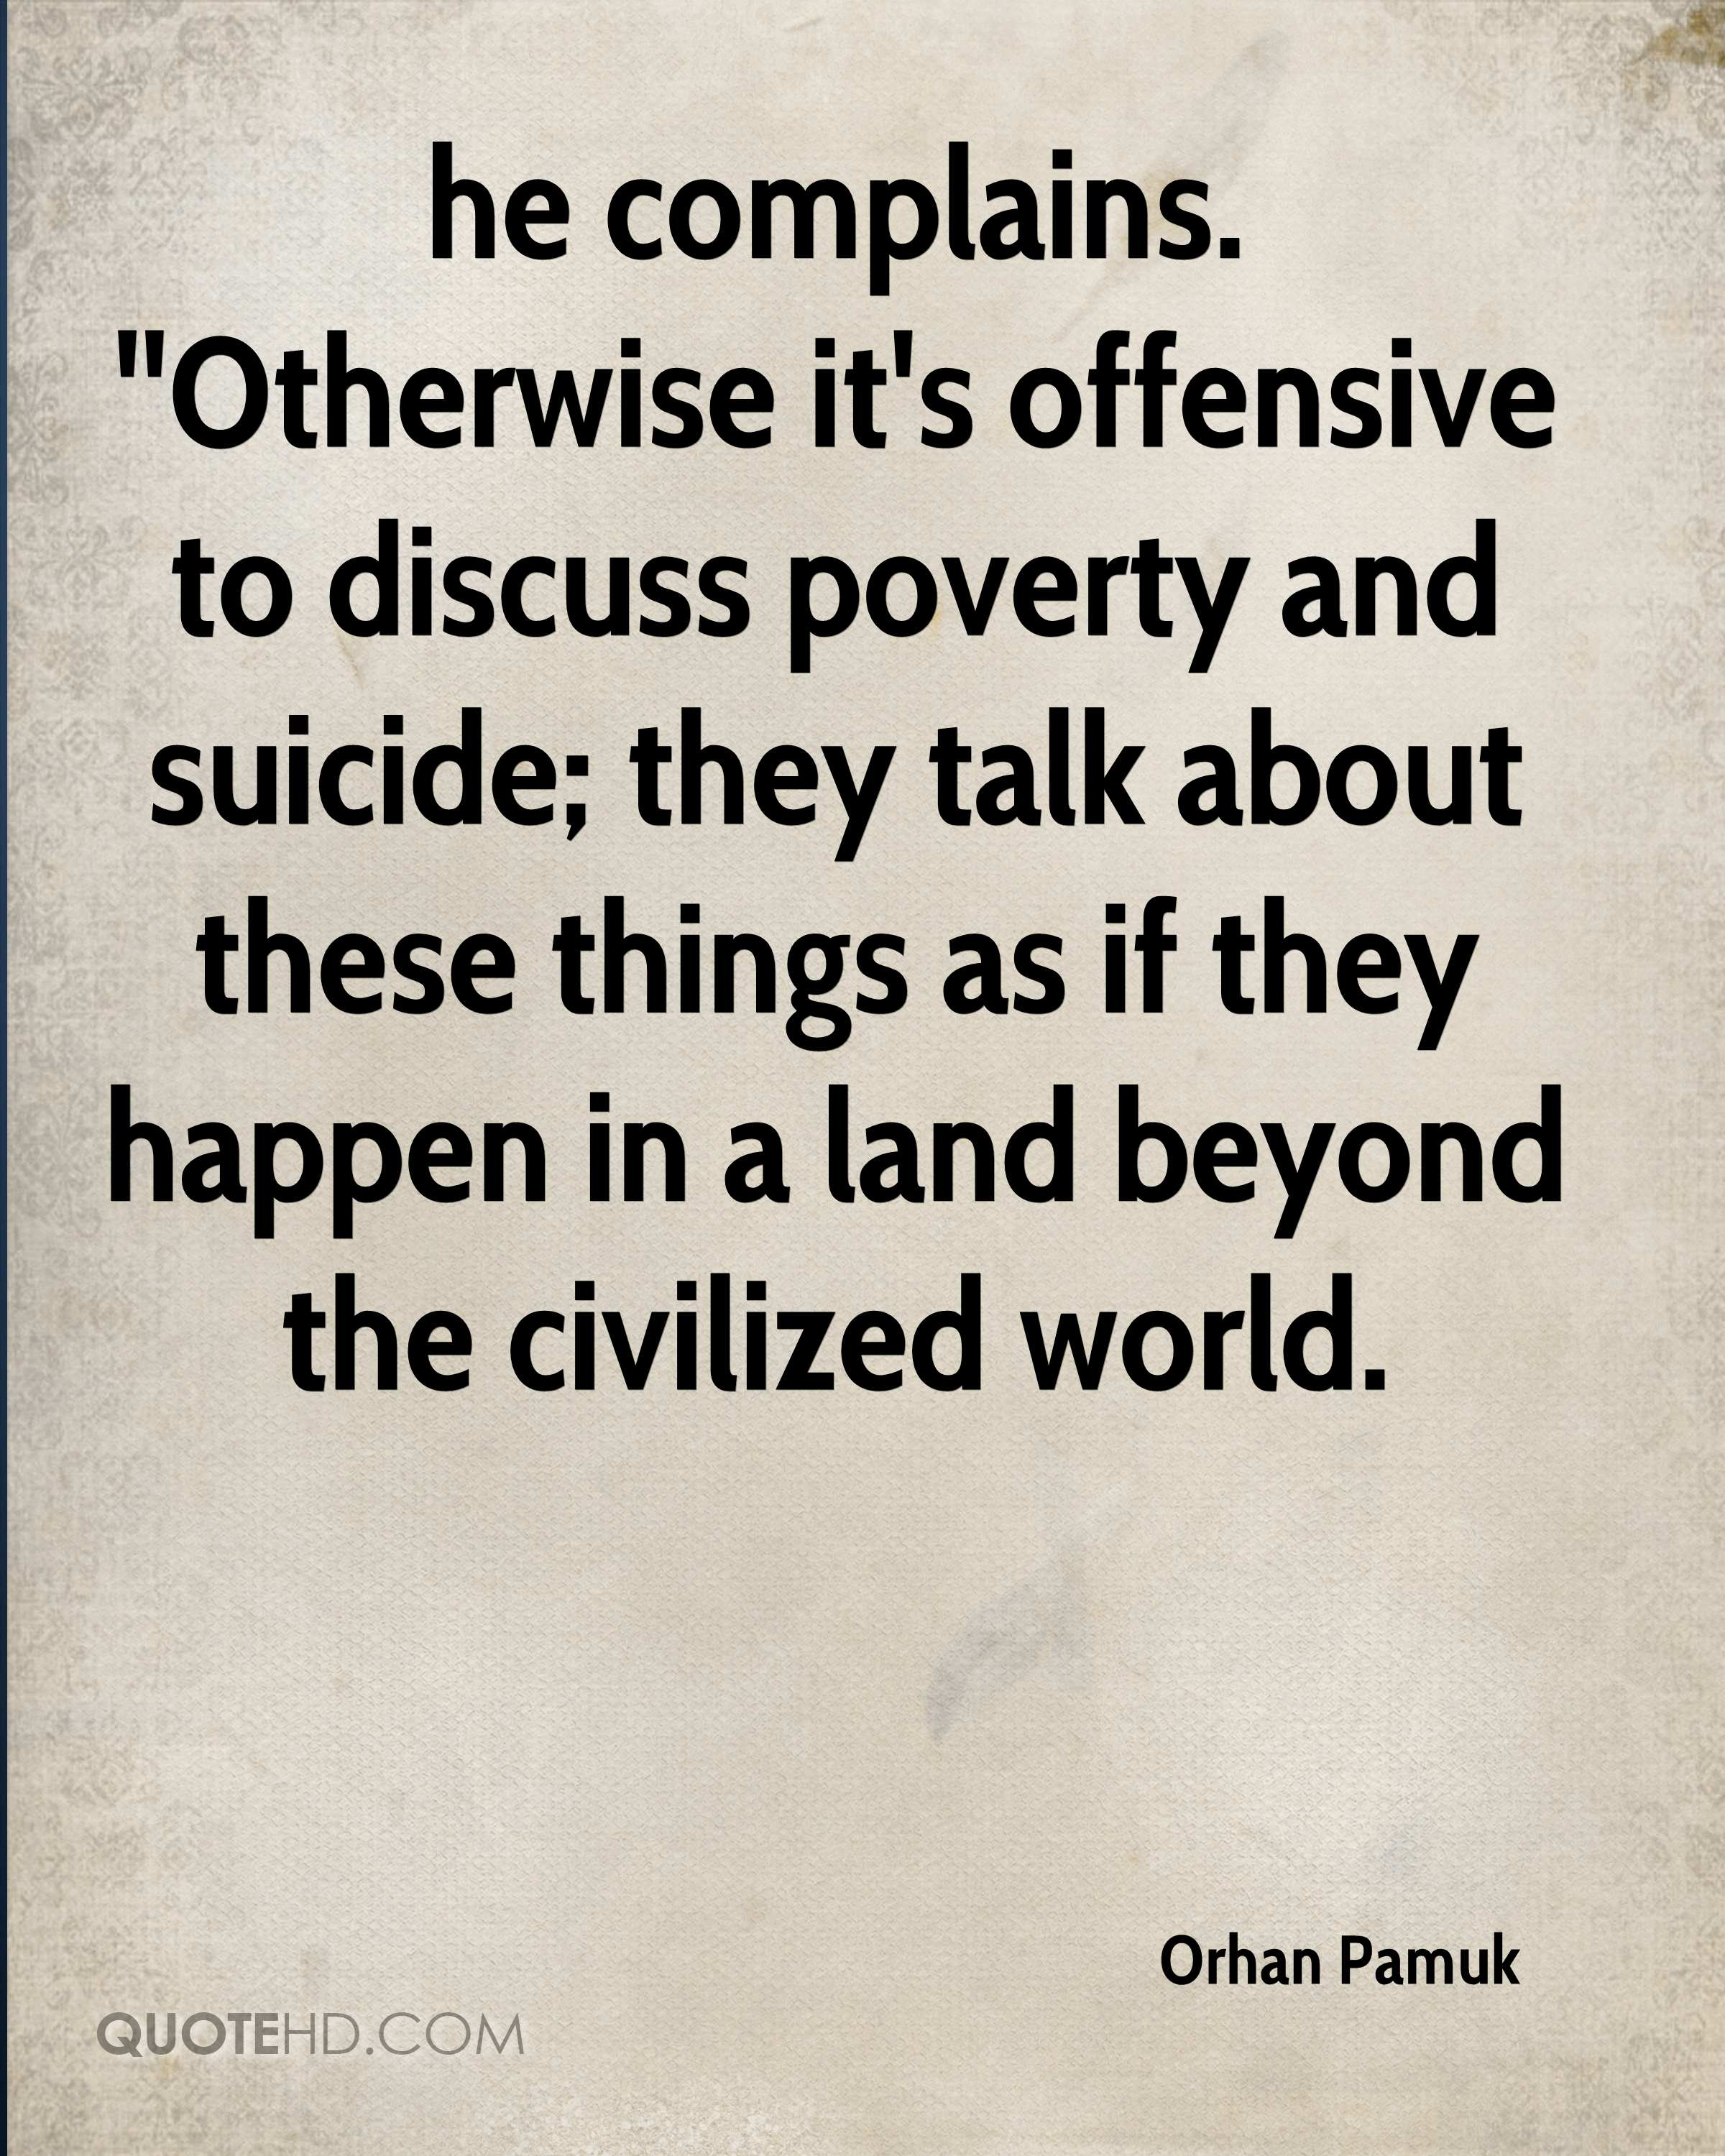 Offensive Quotes Orhan Pamuk Quotes  Quotehd